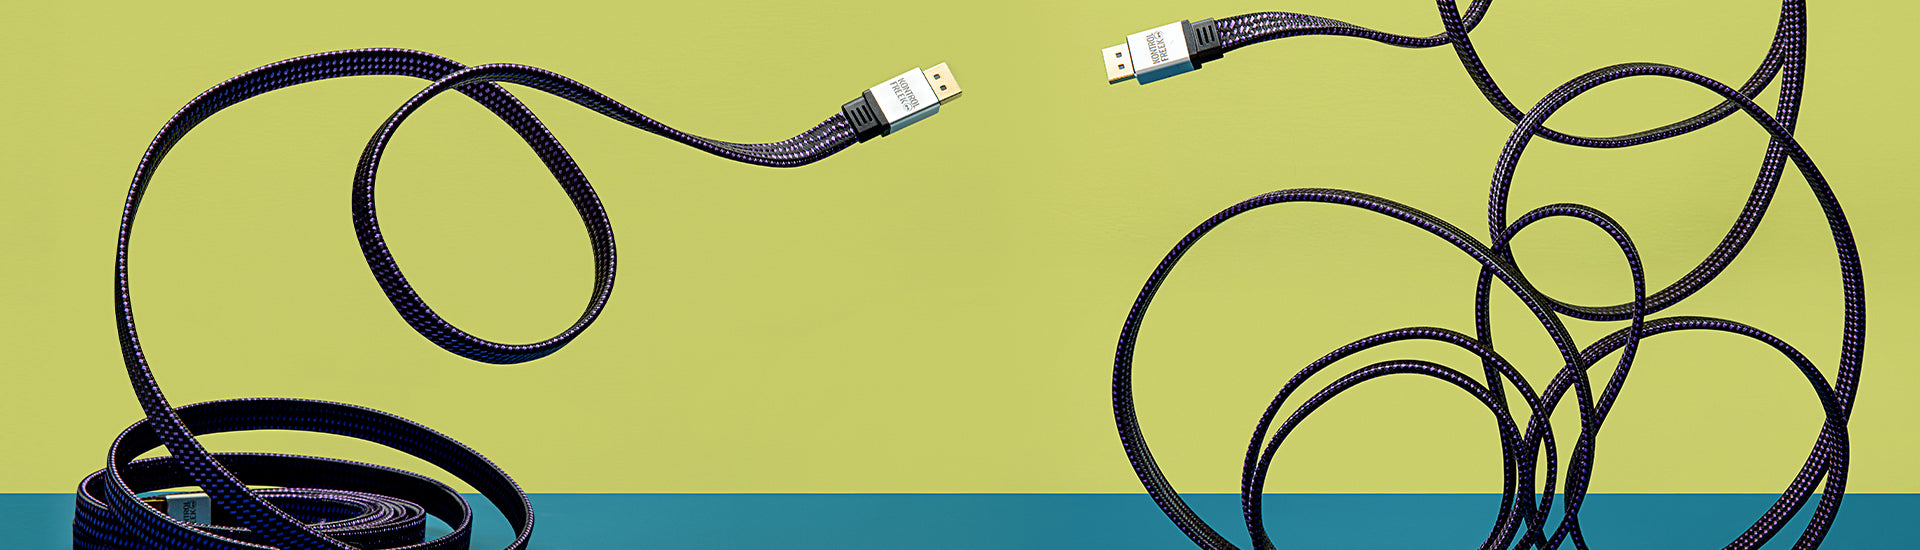 Gaming Cables banner